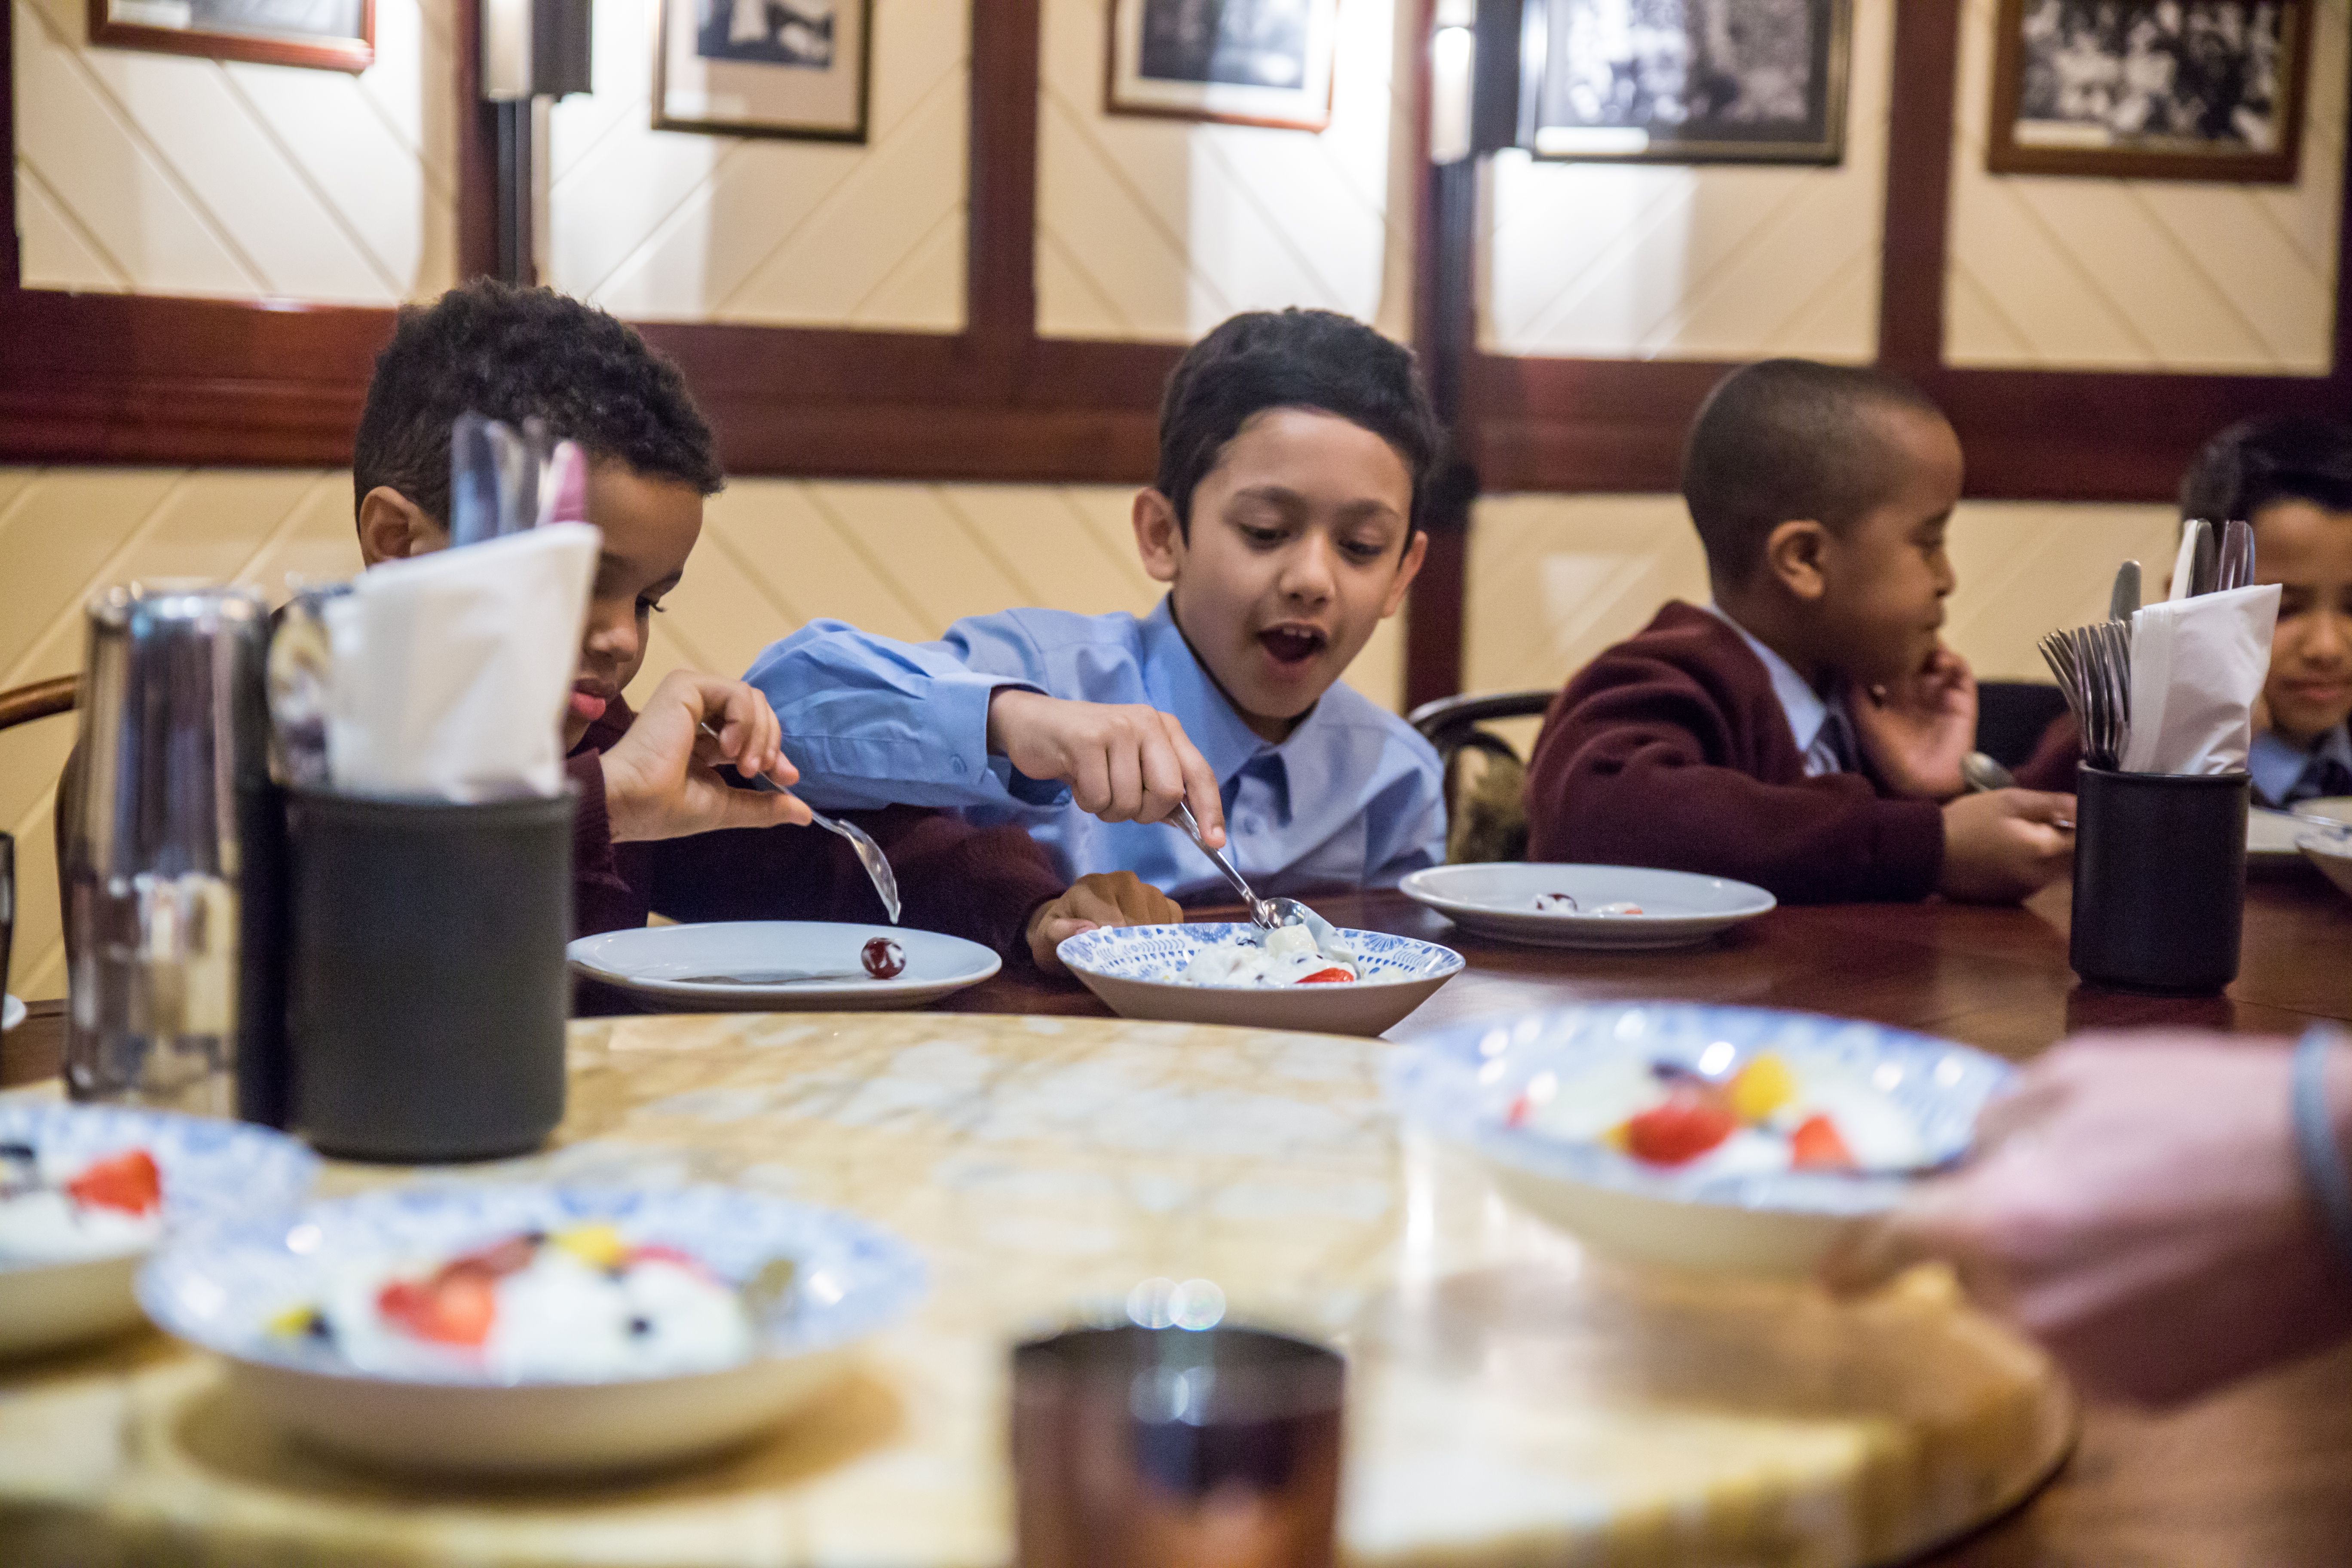 Children enjoy breakfast at Indian cafe chain Dishoom as part of the Magic Breakfast charity initiative